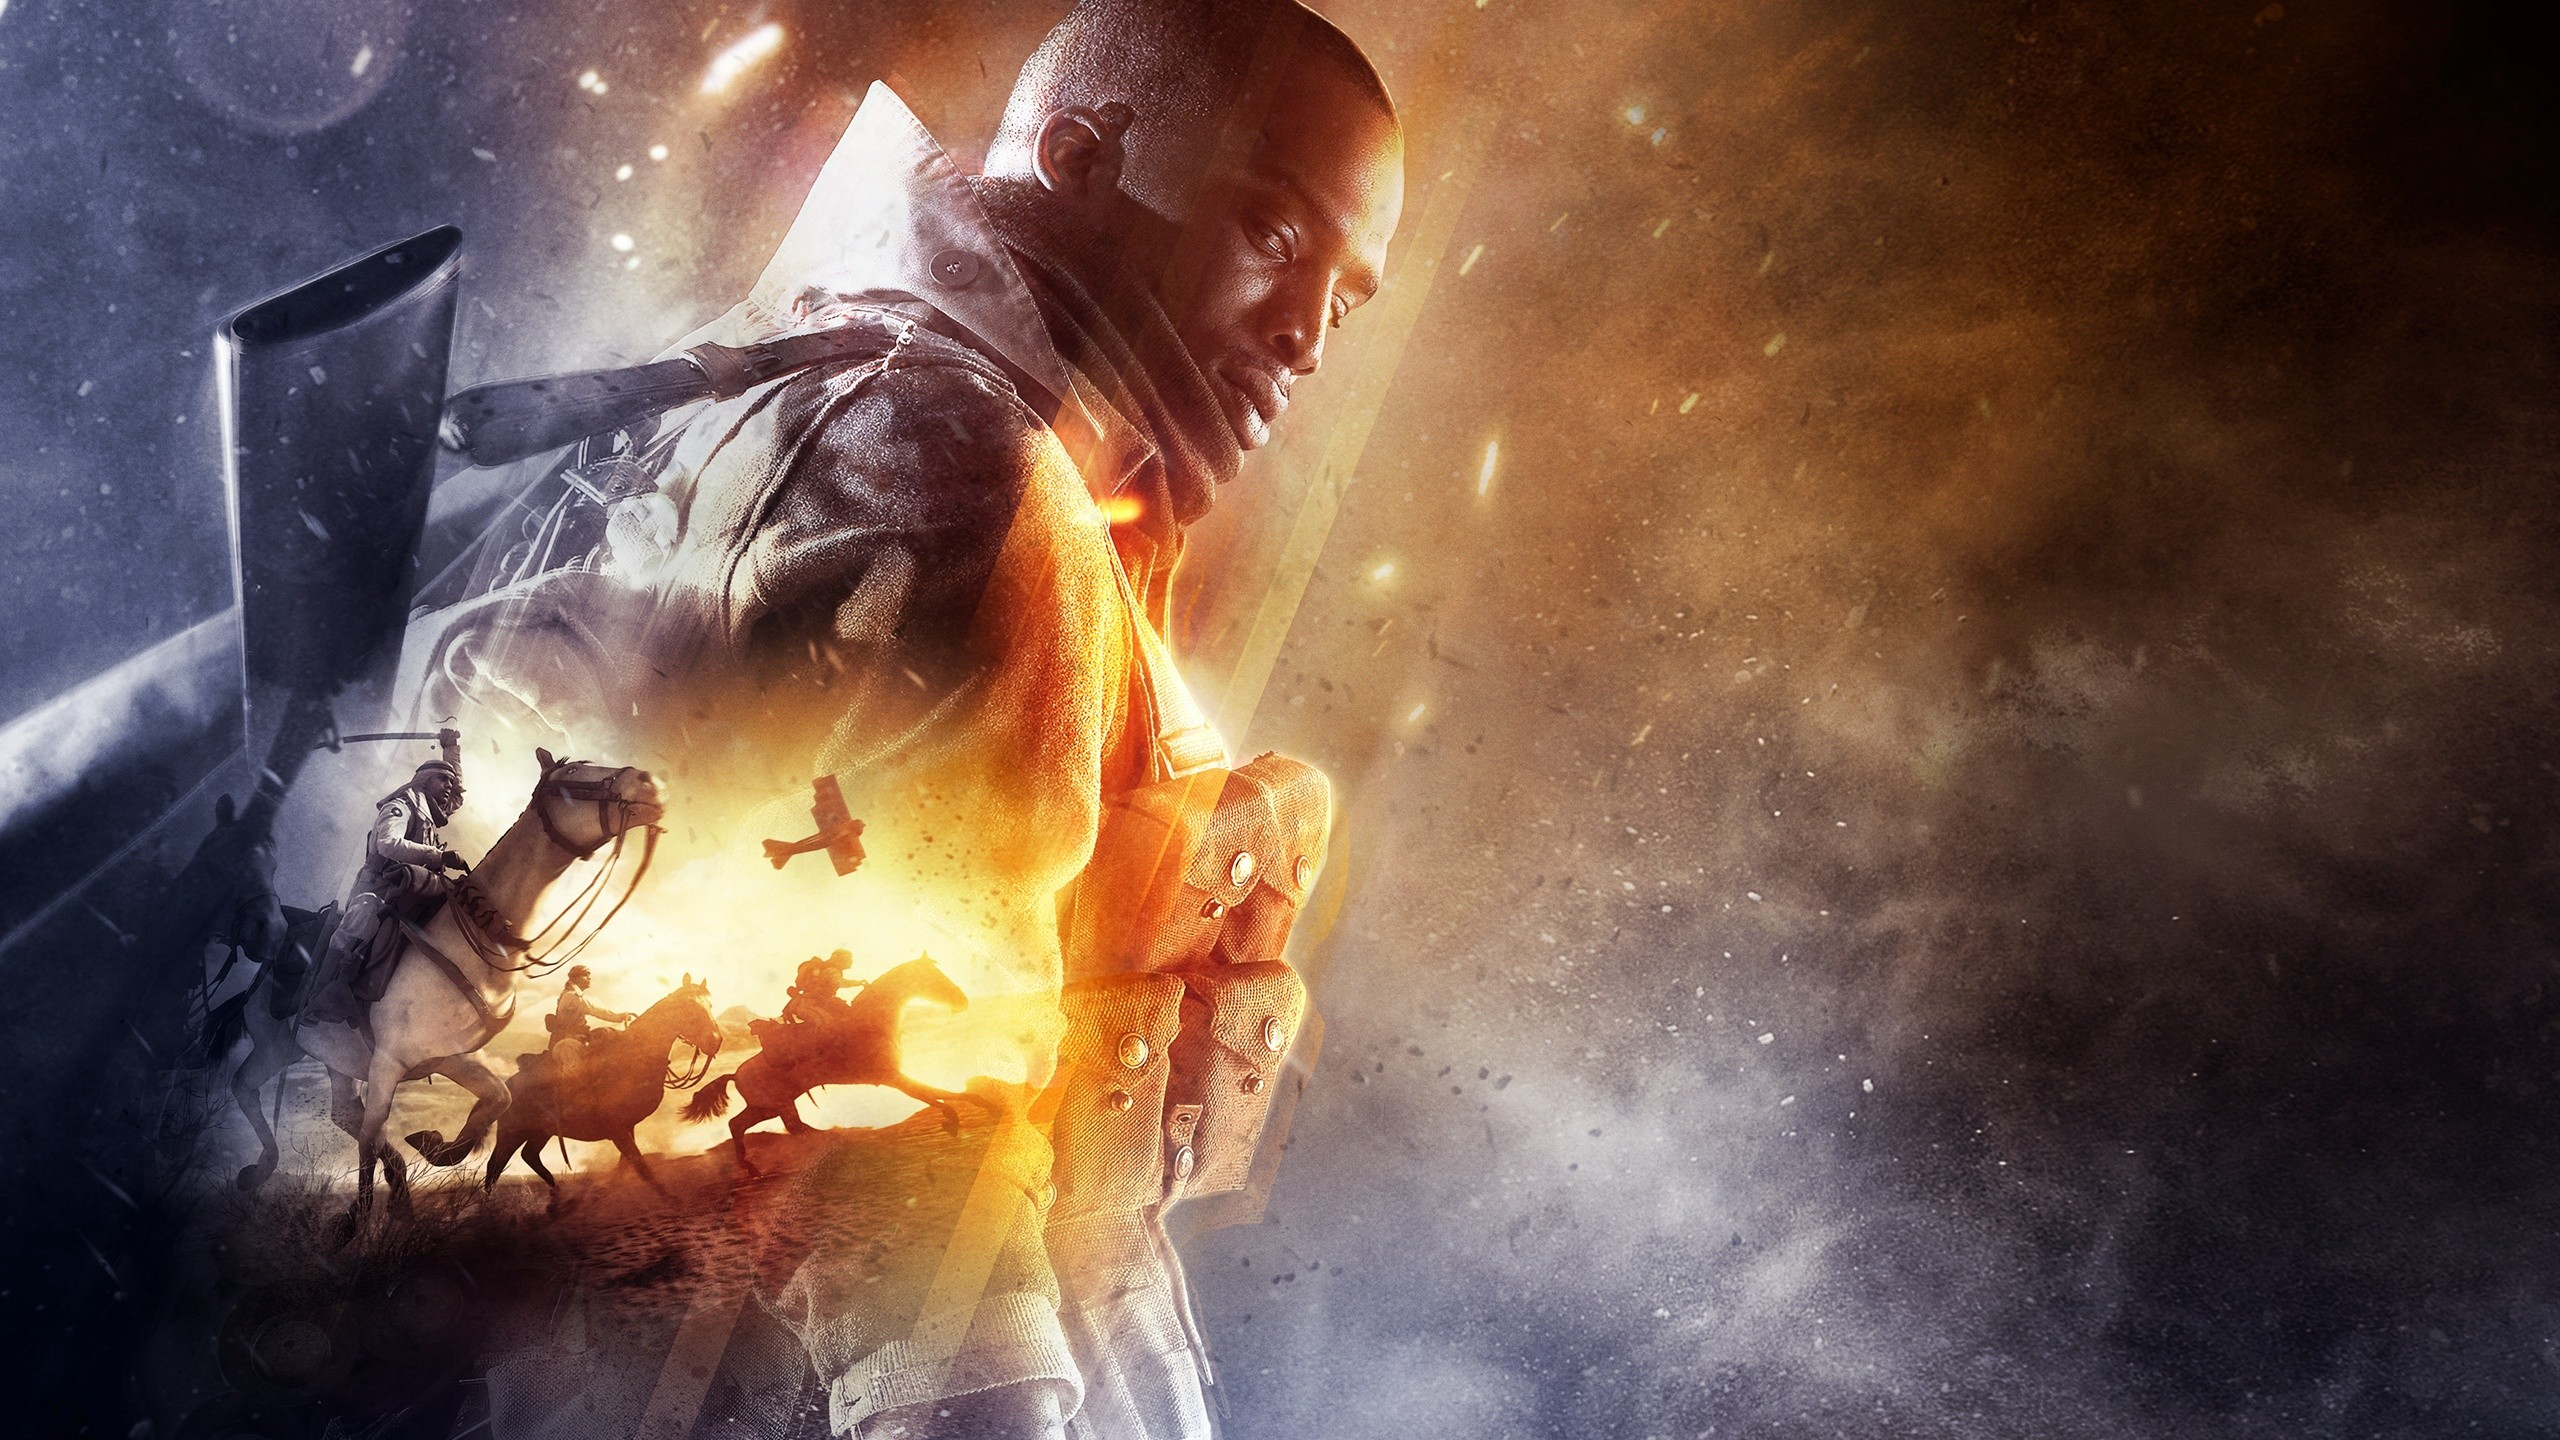 Battlefield 1 HD Xbox One PS4 PC Wallpapers